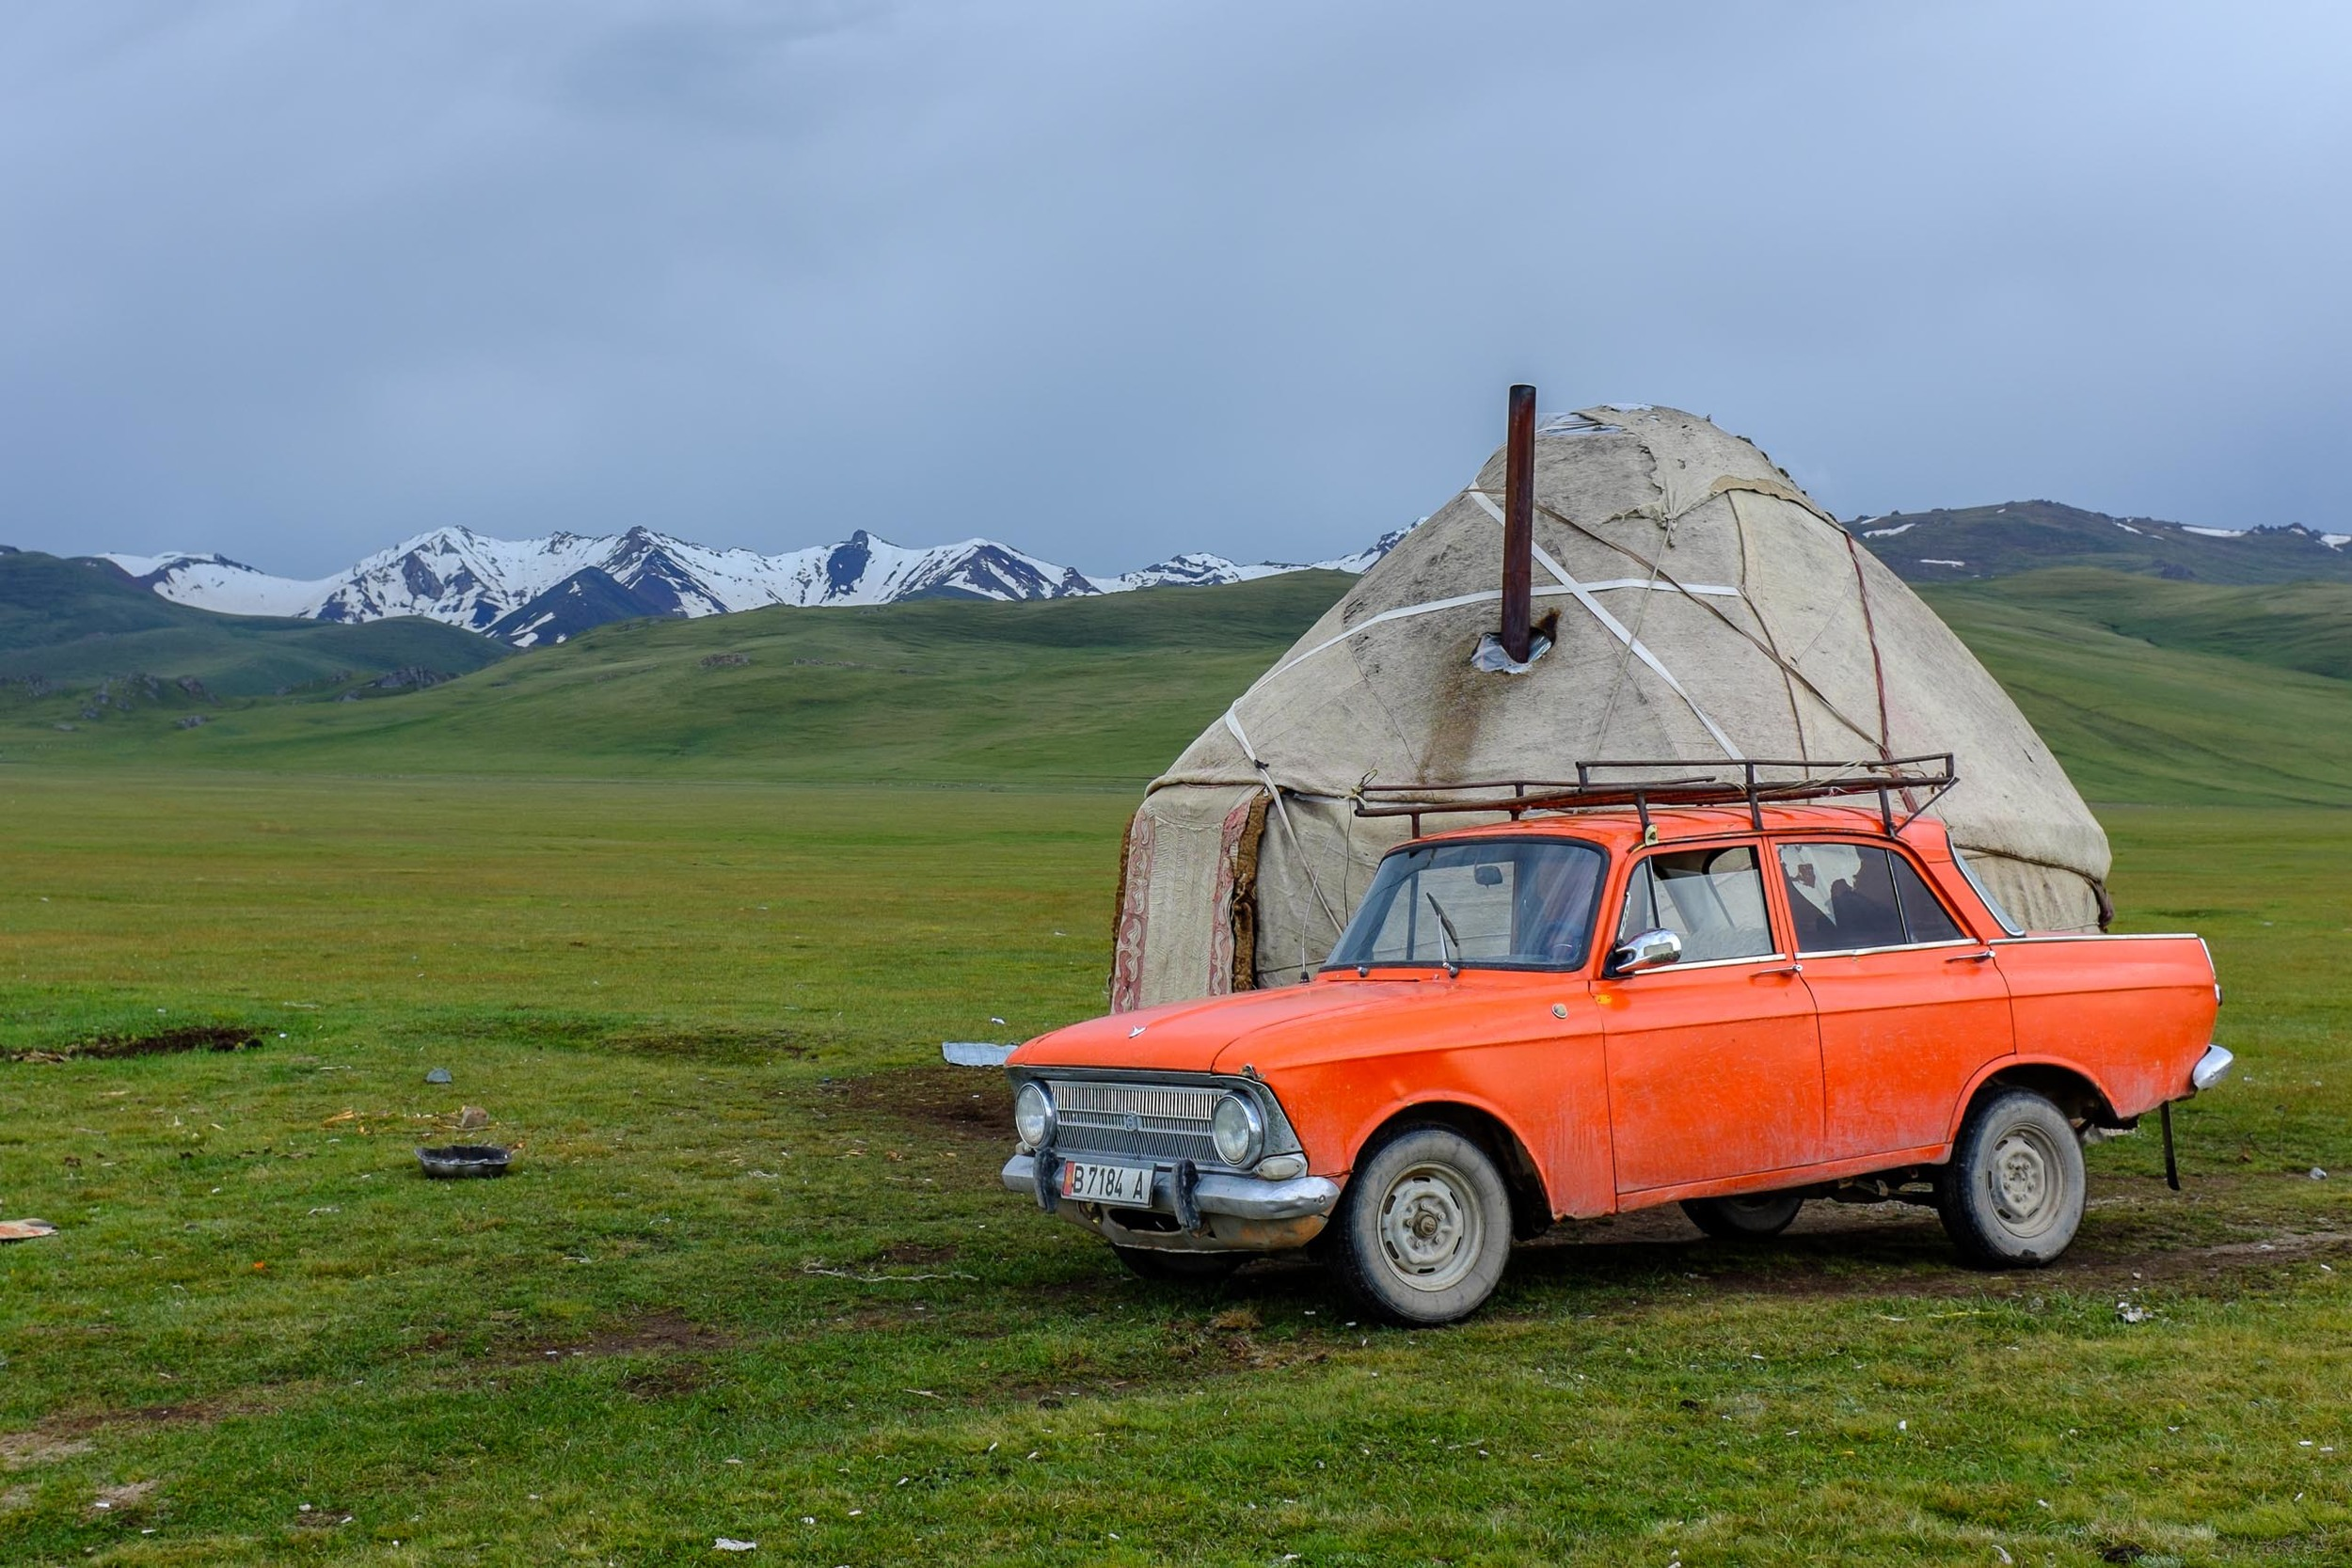 The ubiquitous Lada is by far the most popular car in Kyrgyzstan